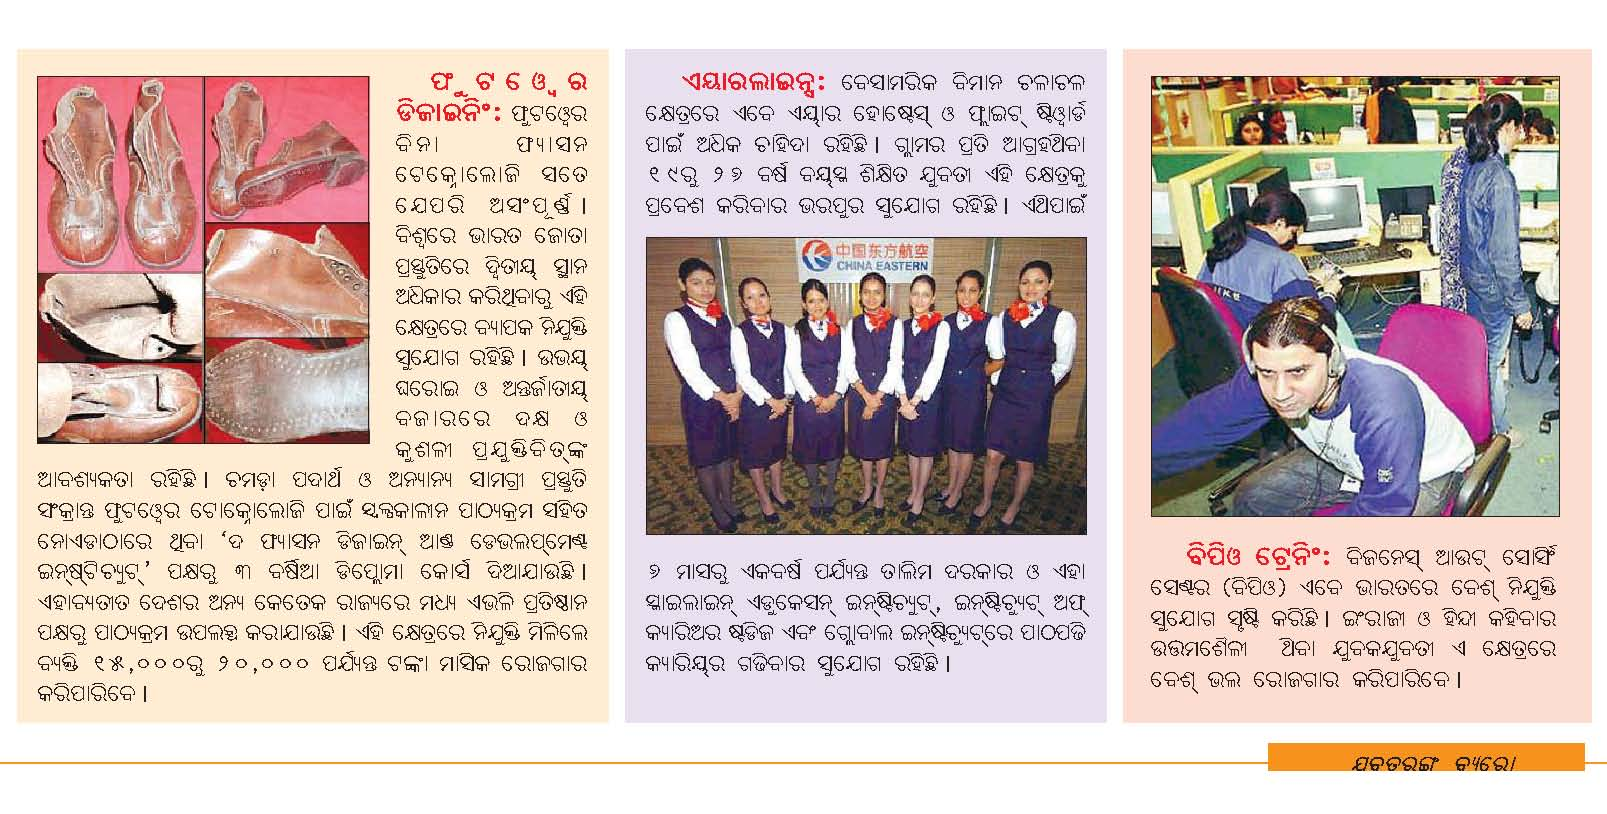 2007 06 23 samaja vocational 2.jpg